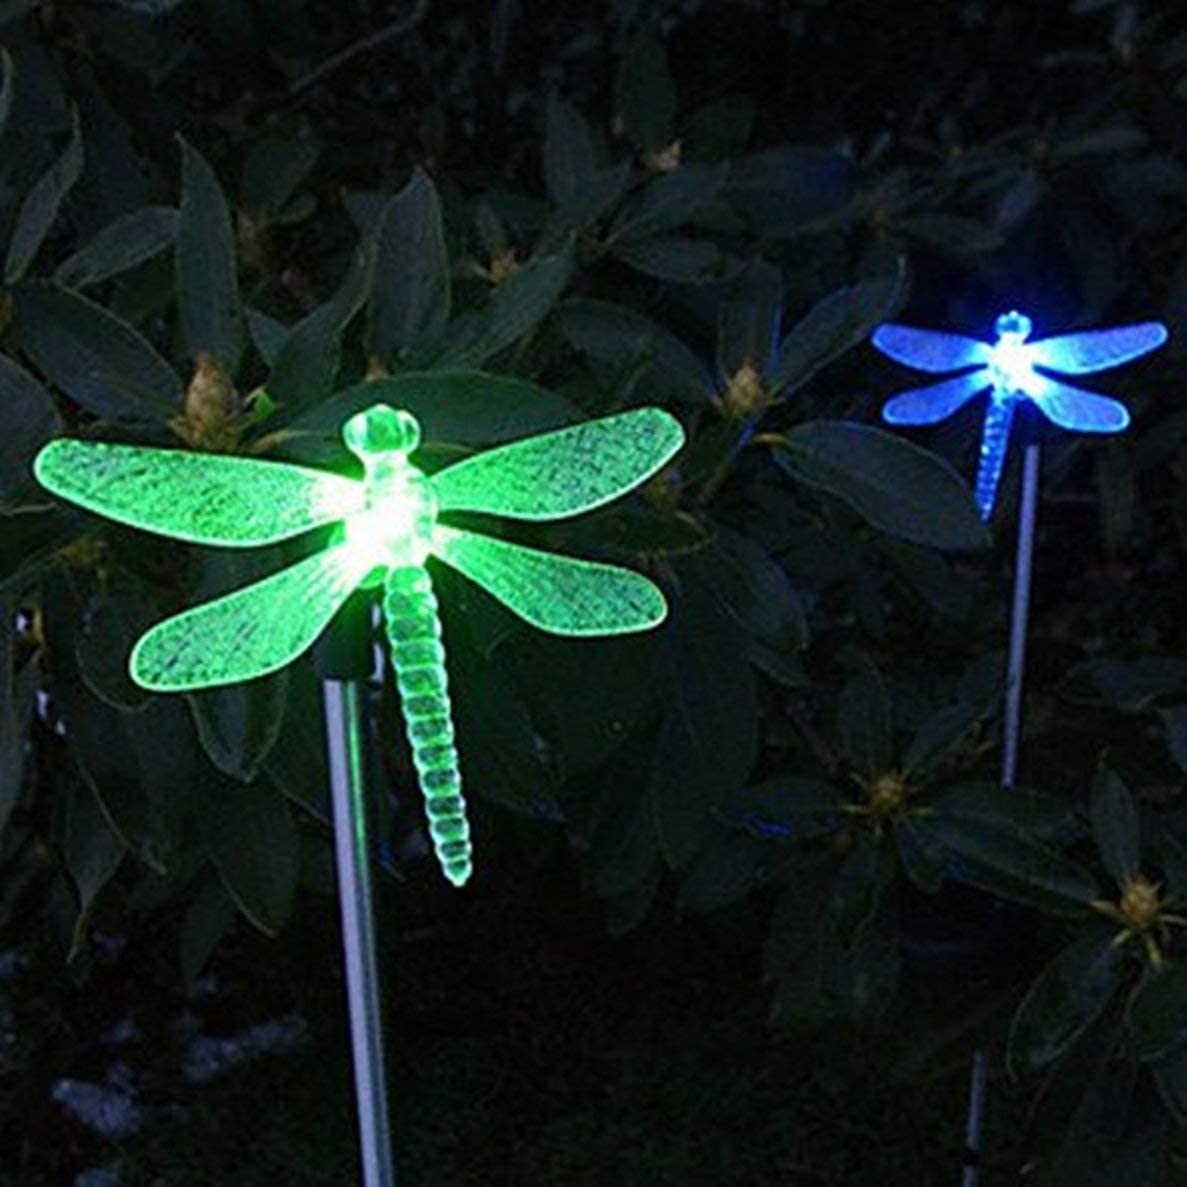 Exquisite Selebrity Set of 2 Dragonfly Clear Acrylic Solar Stake Light Garden Decorations Outdoor Yard Art Lawn Ornaments Patio Lights Stick Color Change LED Light